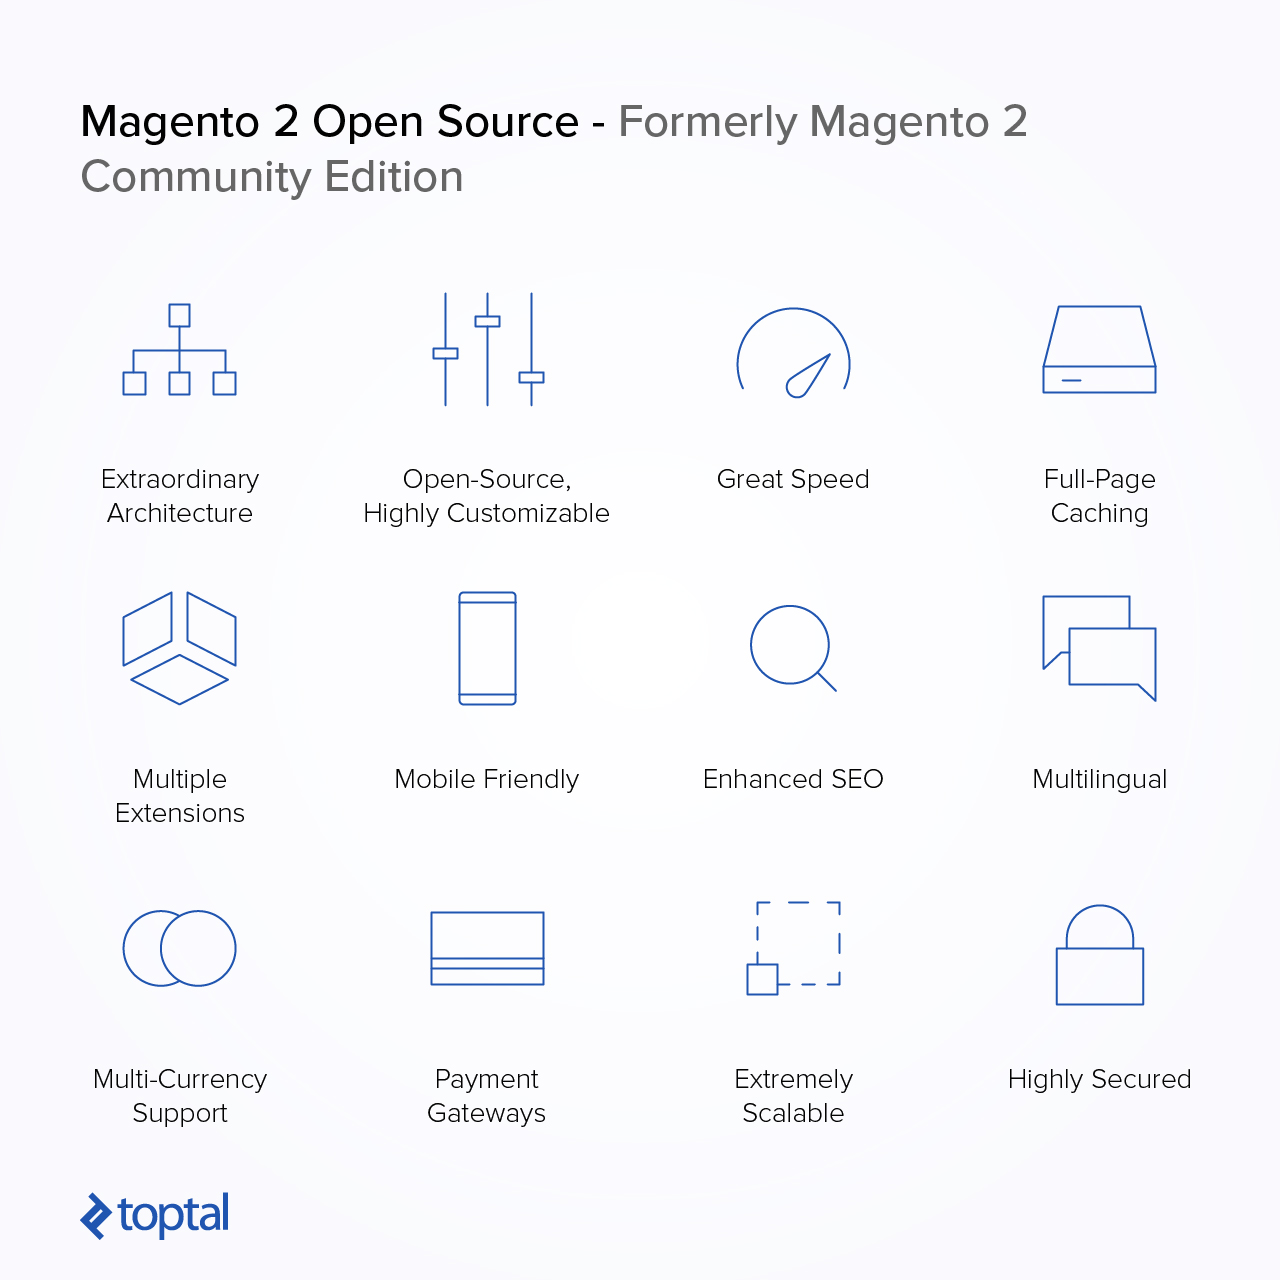 Magento 2 Community Edition is free, but nonetheless packed with features.